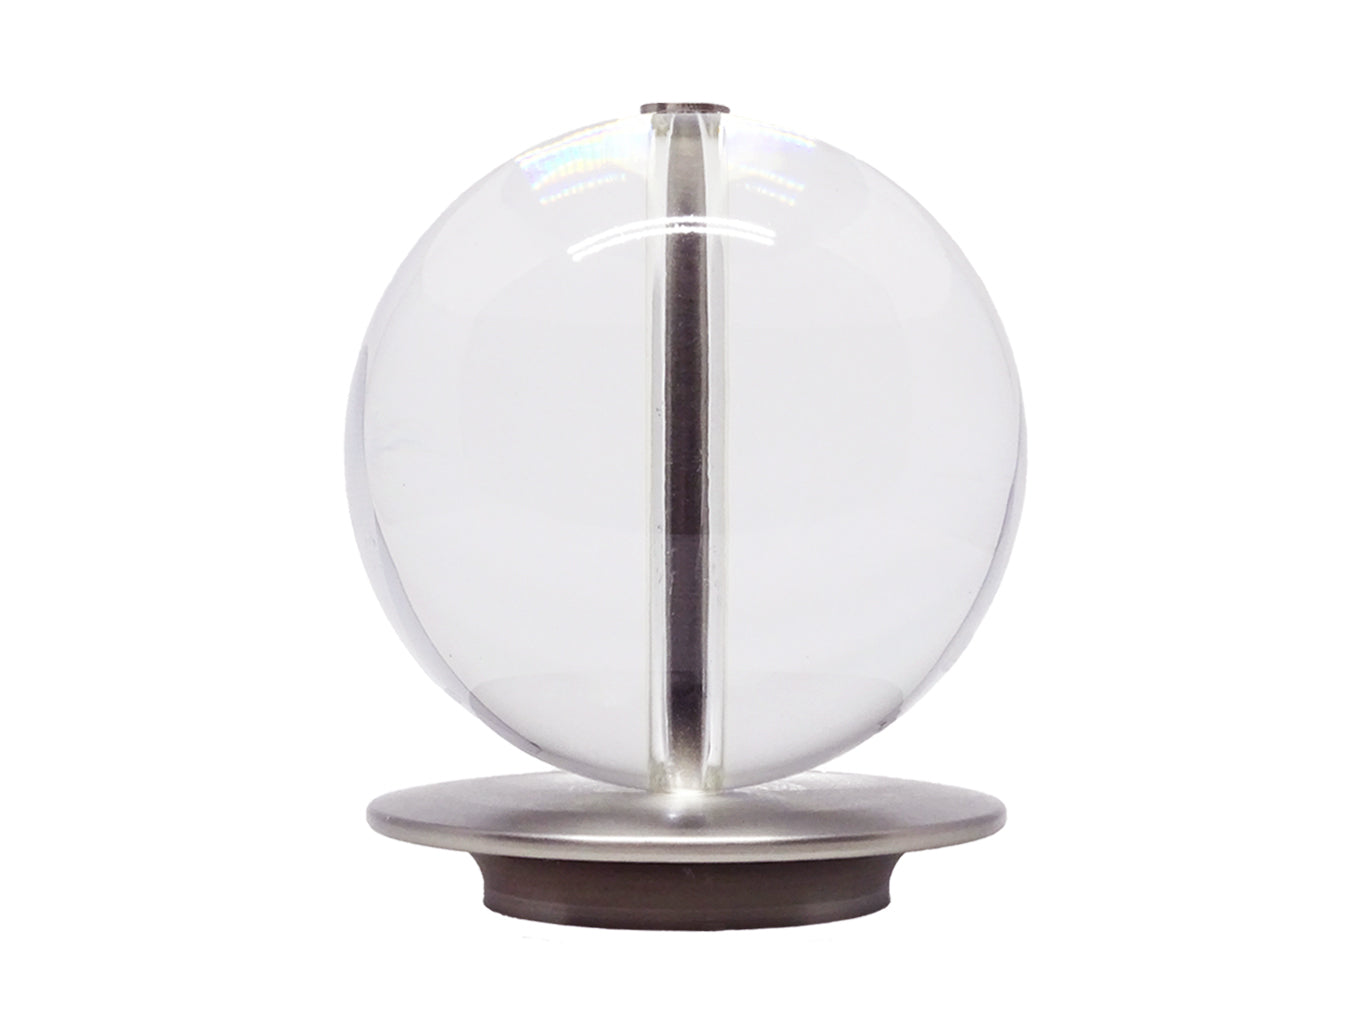 Brushed Steel acrylic ball 50mm curtain pole finial by Walcot House